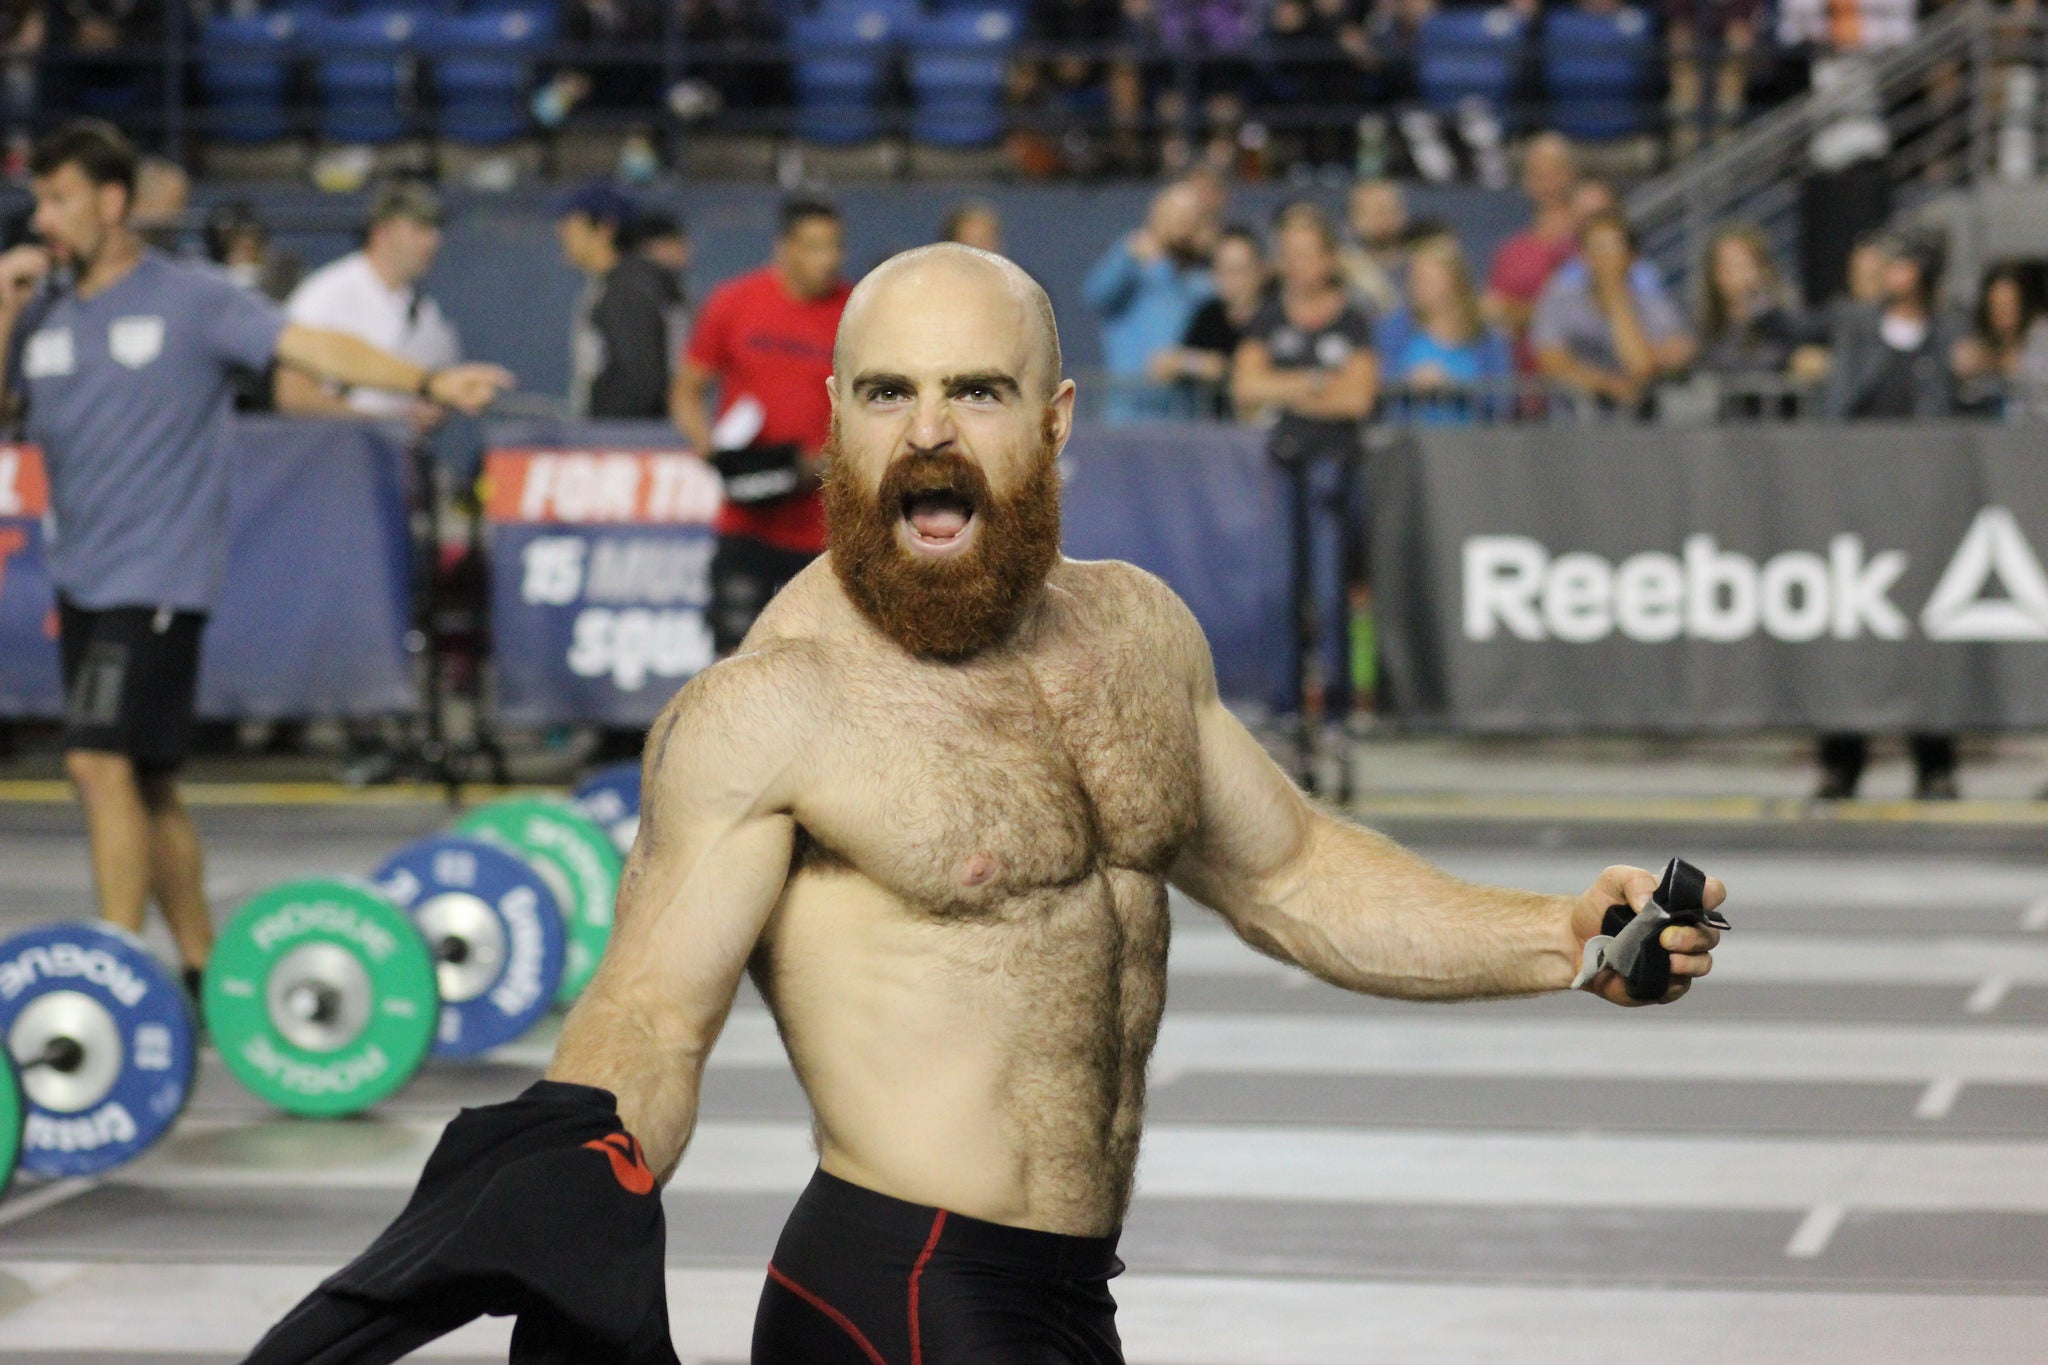 Lucas Parker CrossFit Games Athlete from Victoria BC via the Bloynx Blog